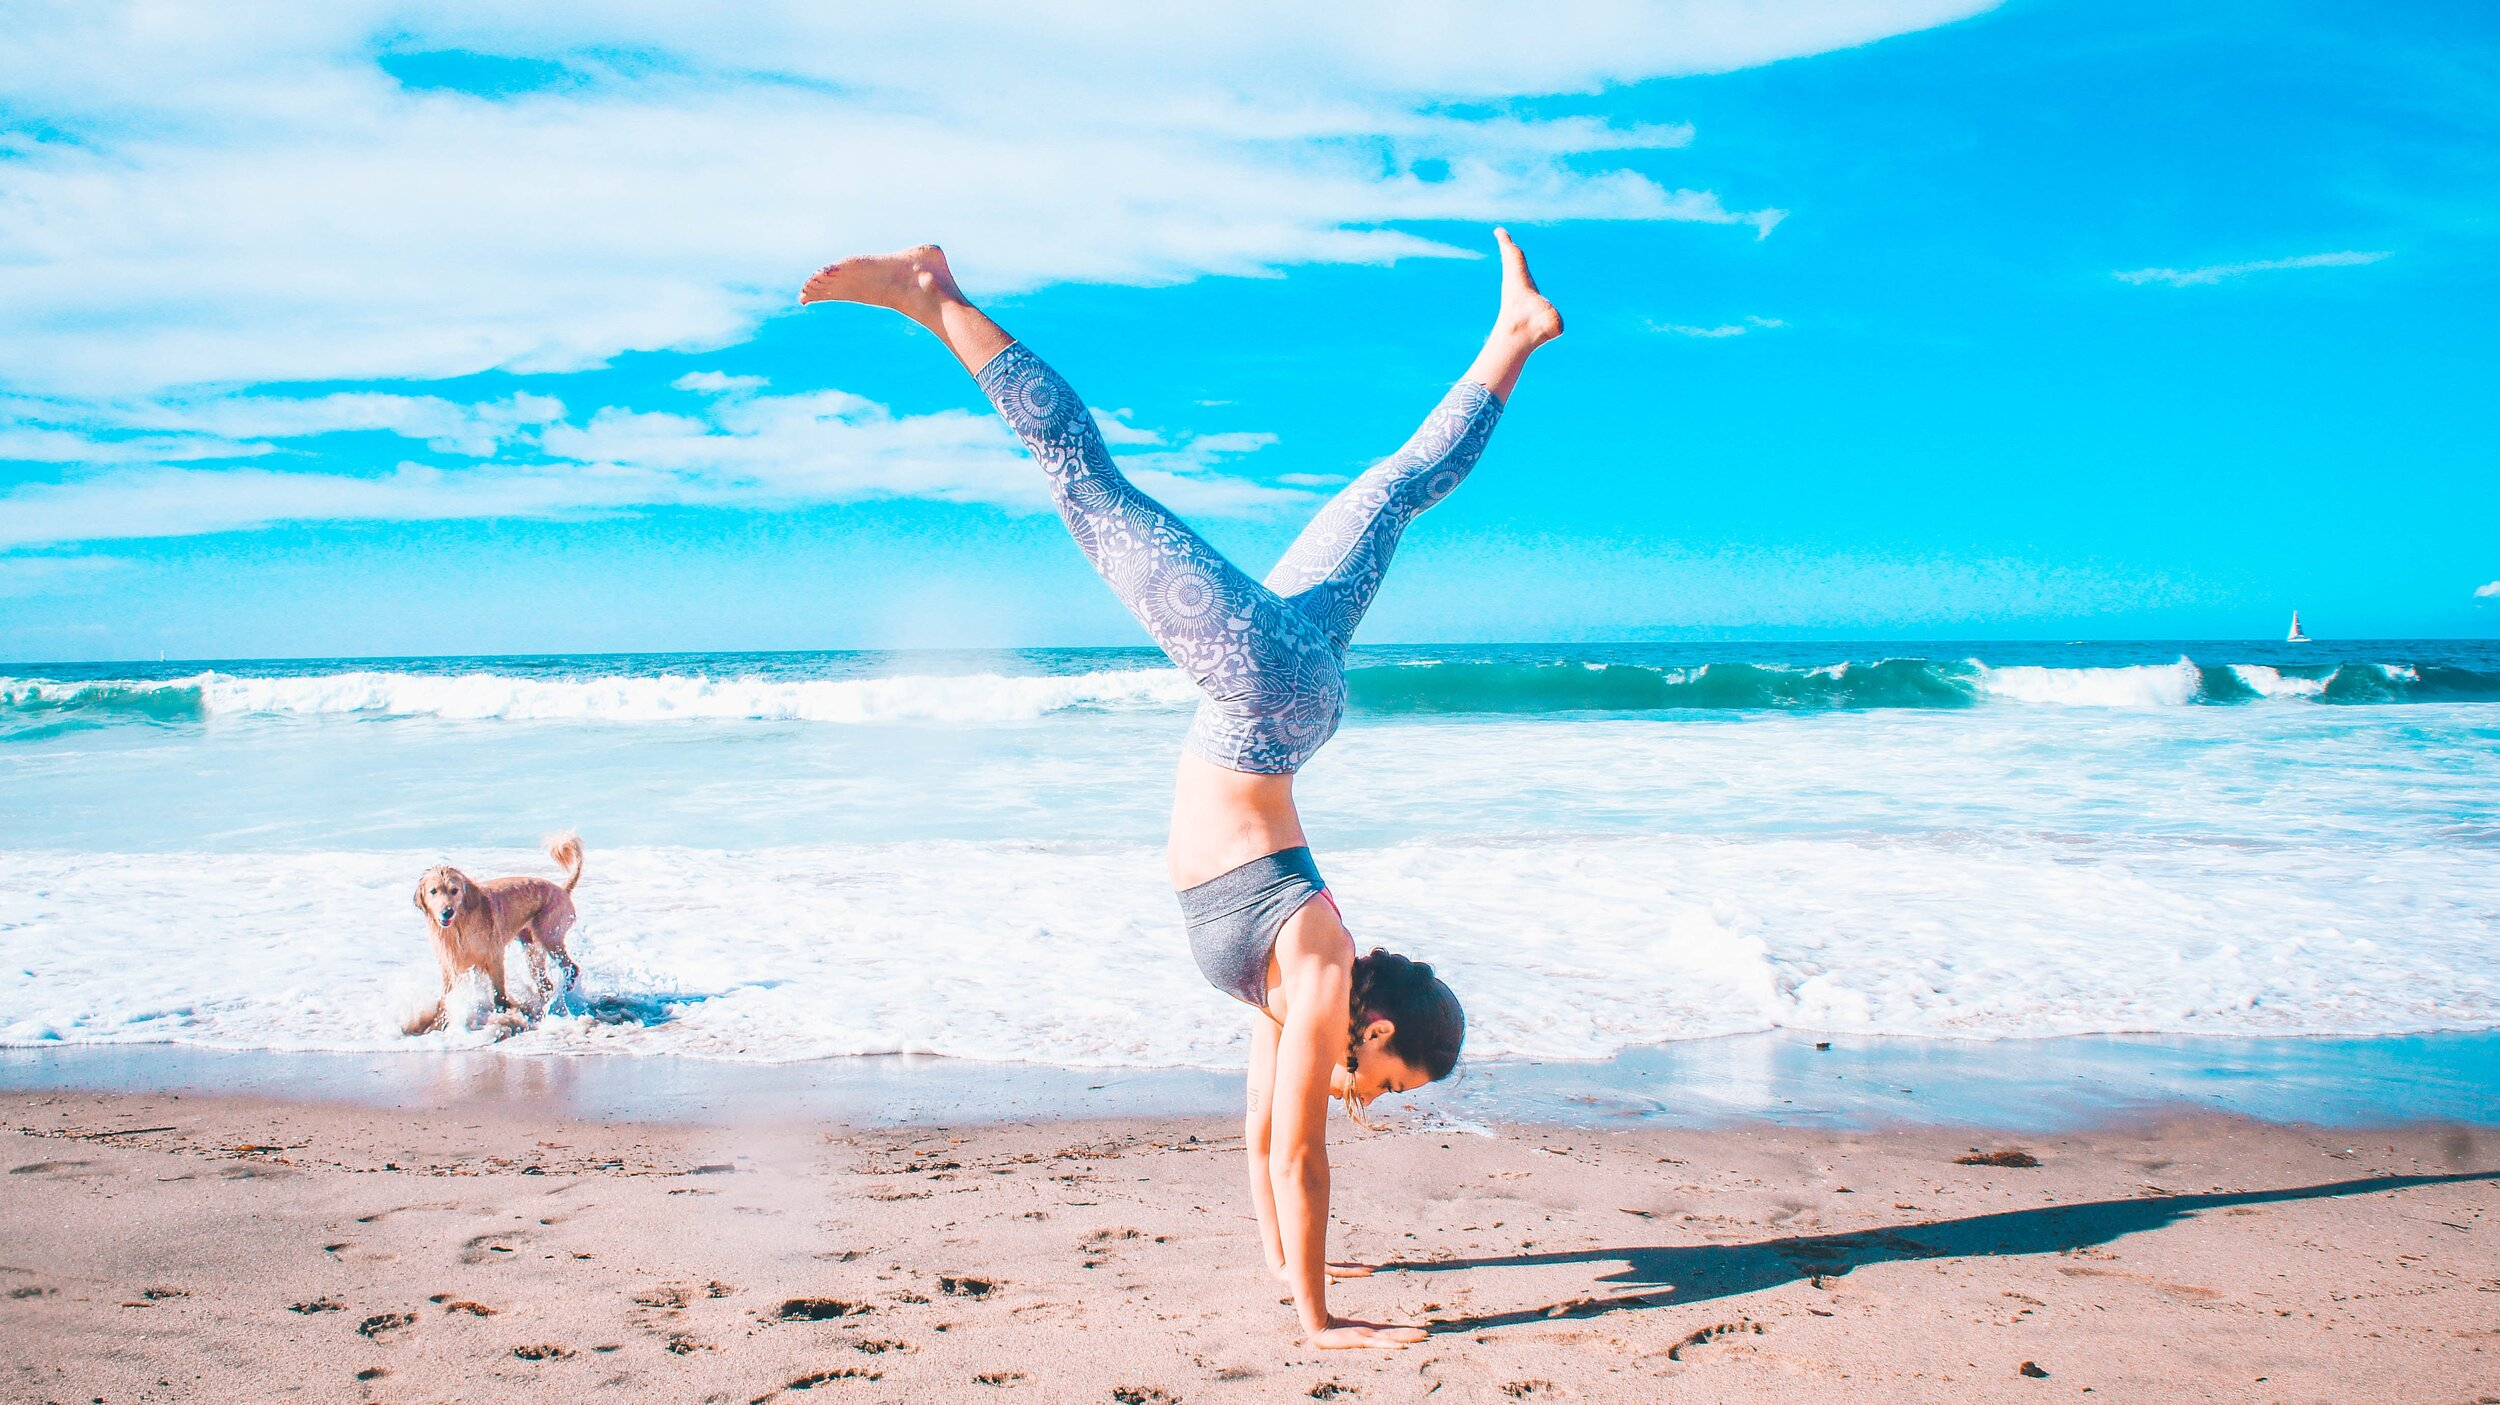 Achieve your health & wellbeing goals in small, easy steps during the 4 week program & learn lifelong habits to keep you well, energetic & vibrant. -